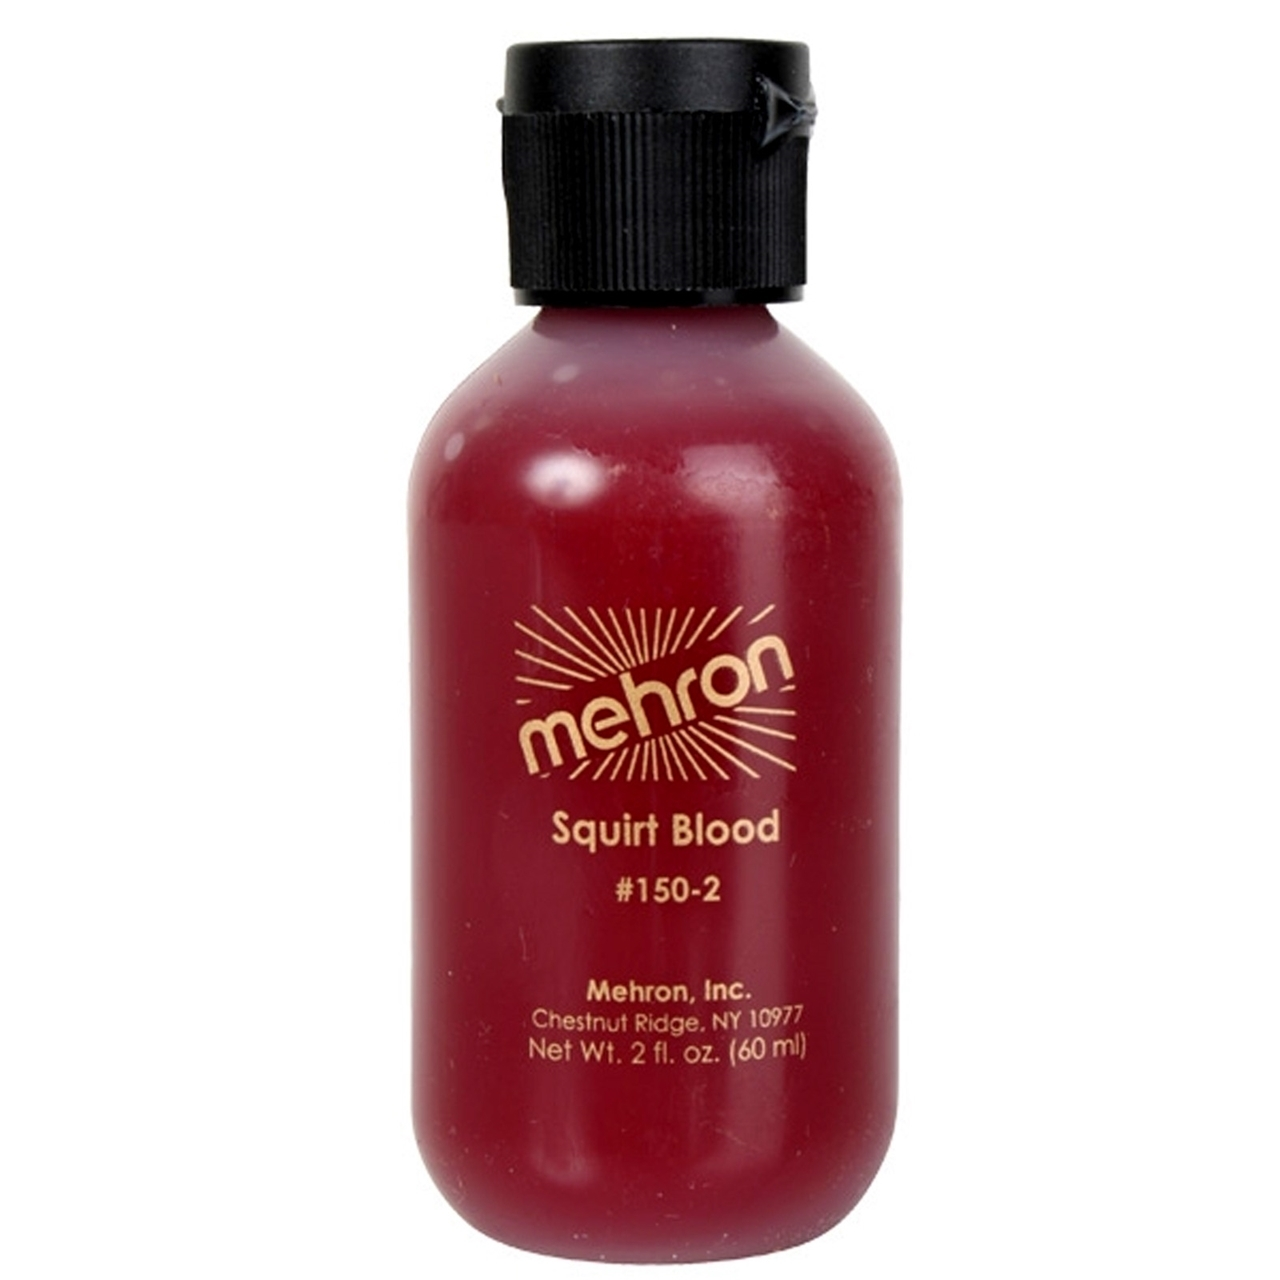 Picture of Mehron Squirt Blood - Bright Arterial - 2oz